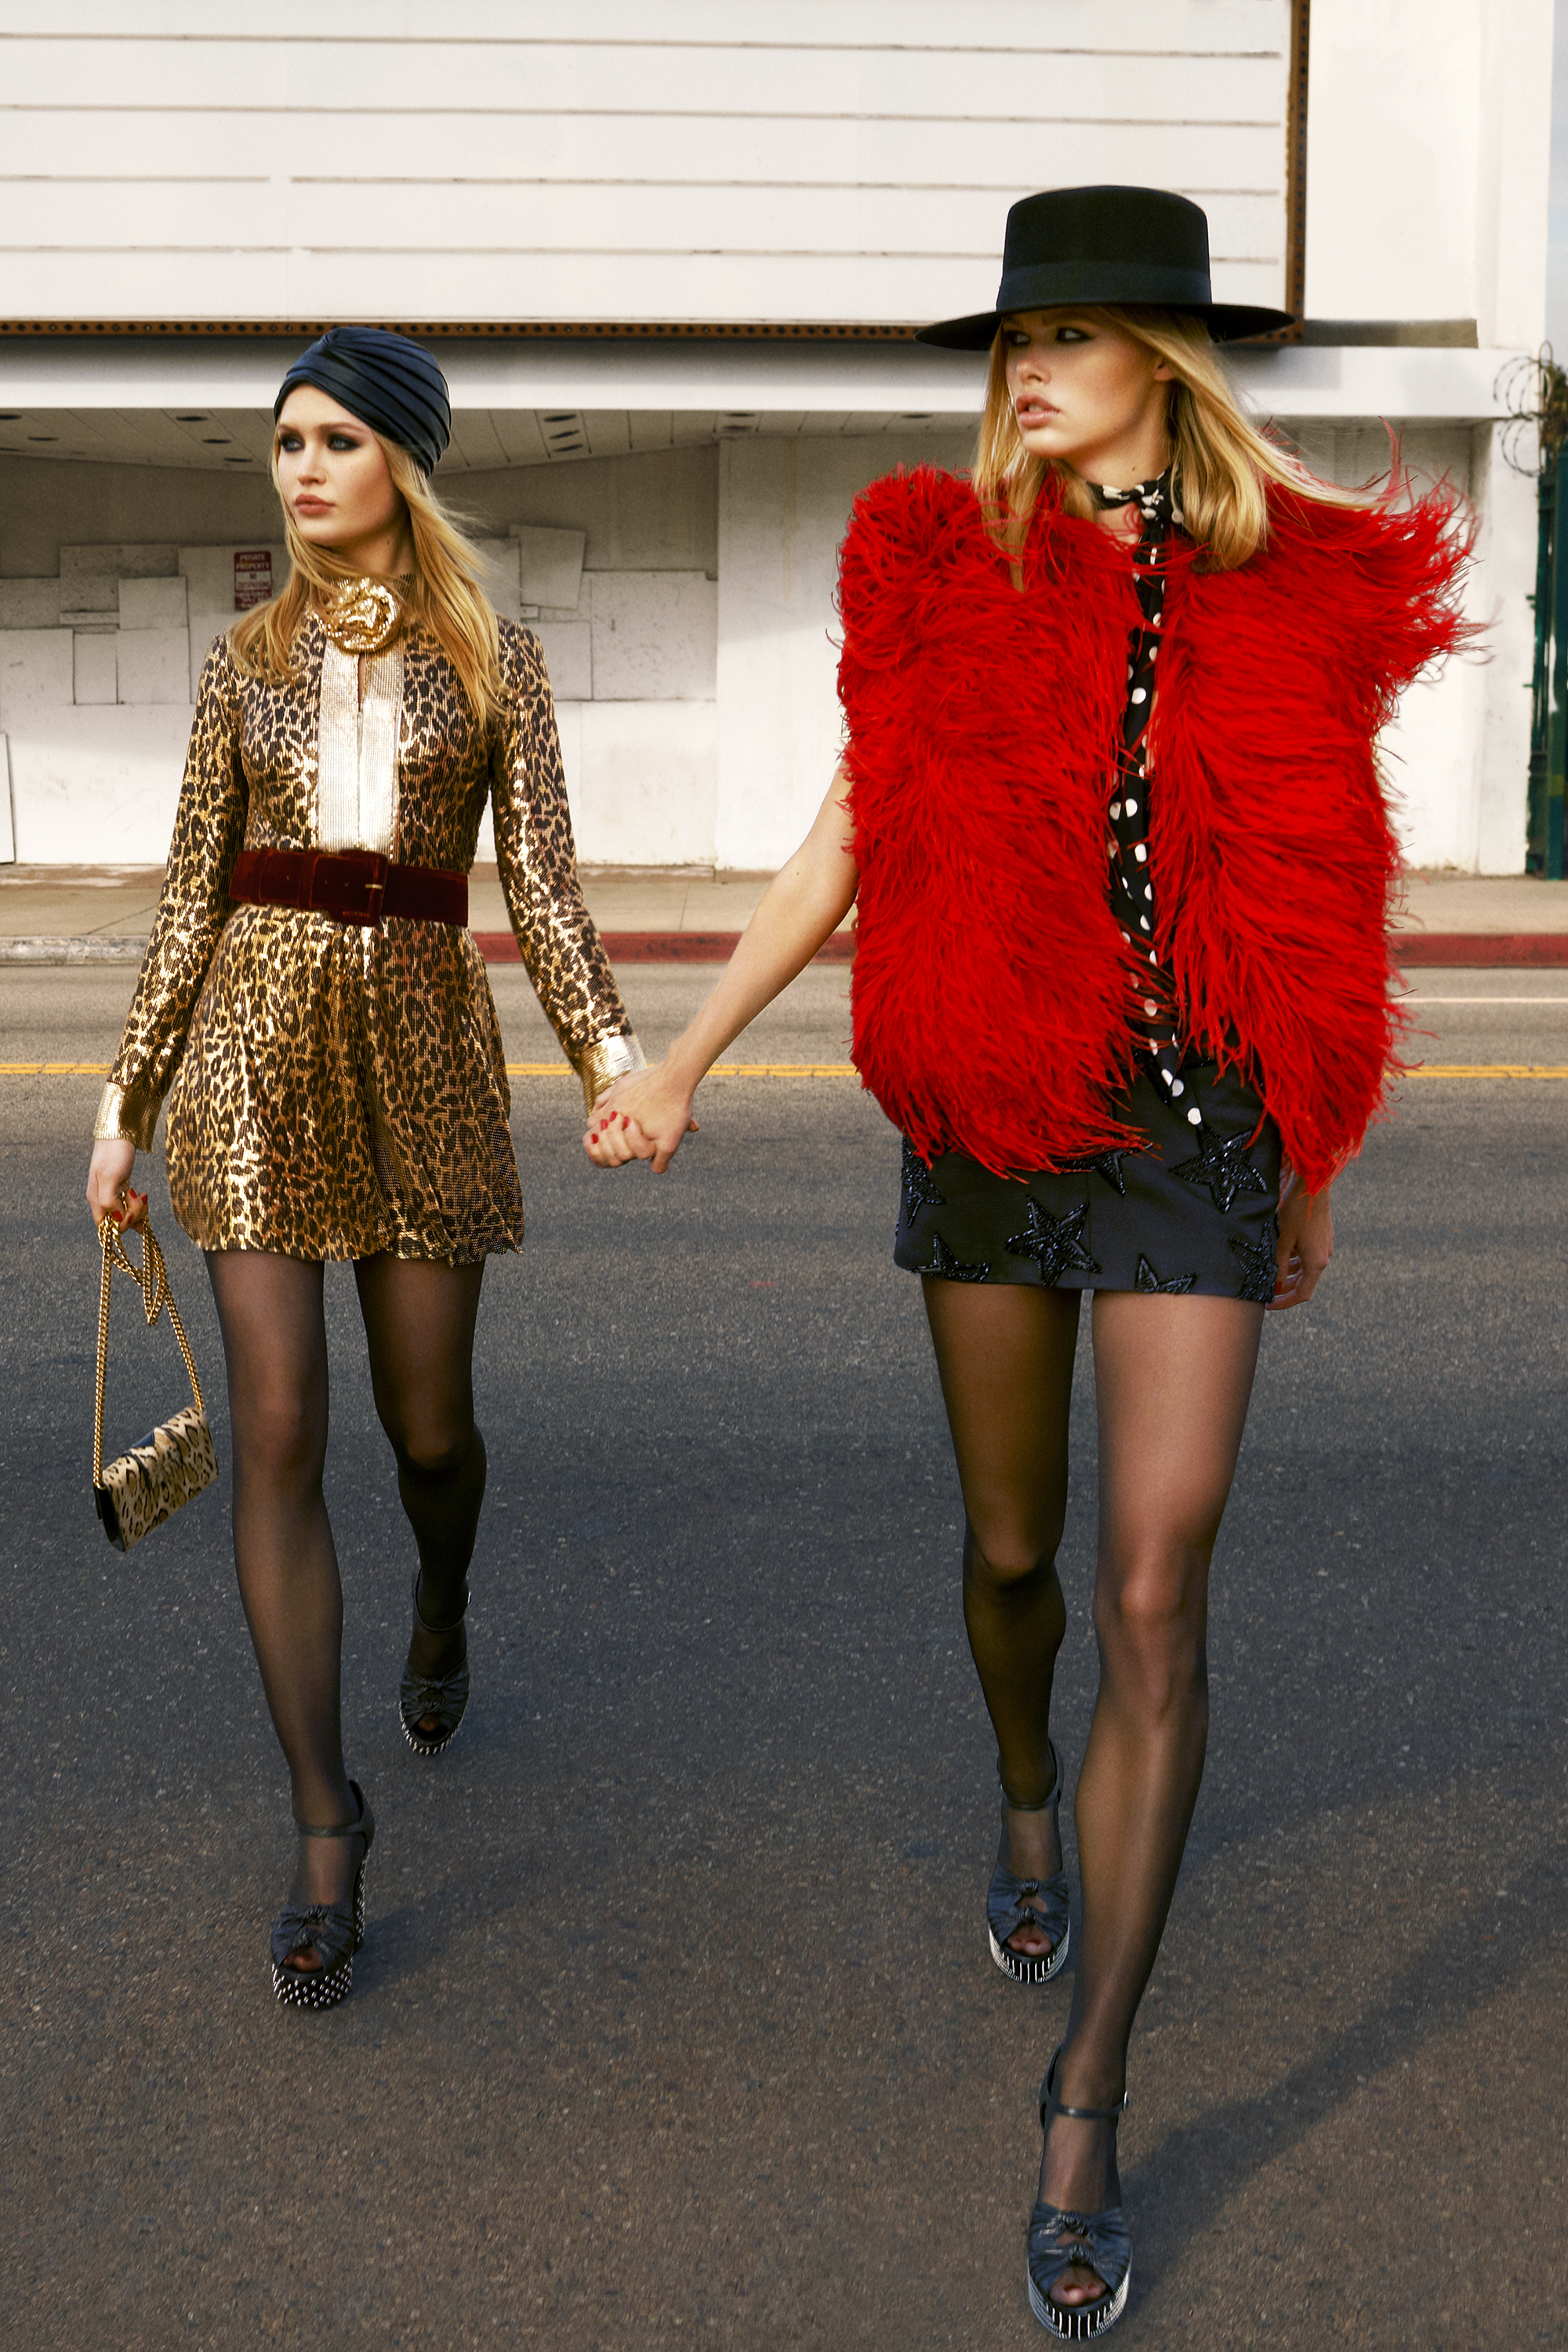 70s Glam Rock Inspired Fashion Trend For Spring 2015 Spring 2015 Trends And Fashion Editorial